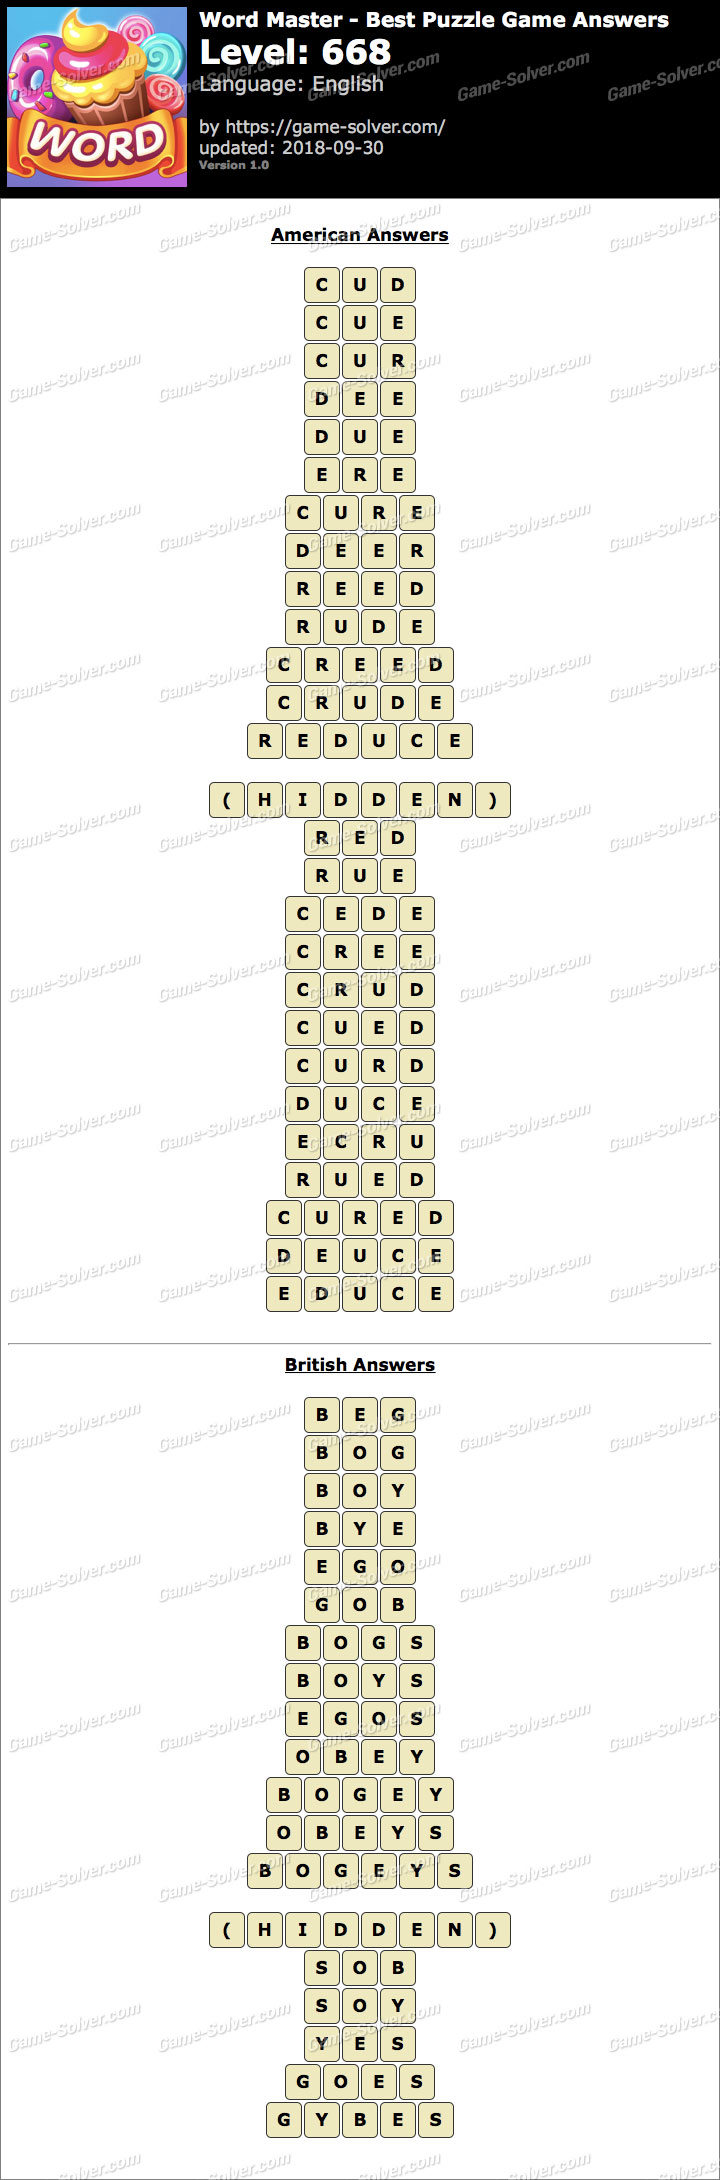 Word Master-Best Puzzle Game Level 668 Answers